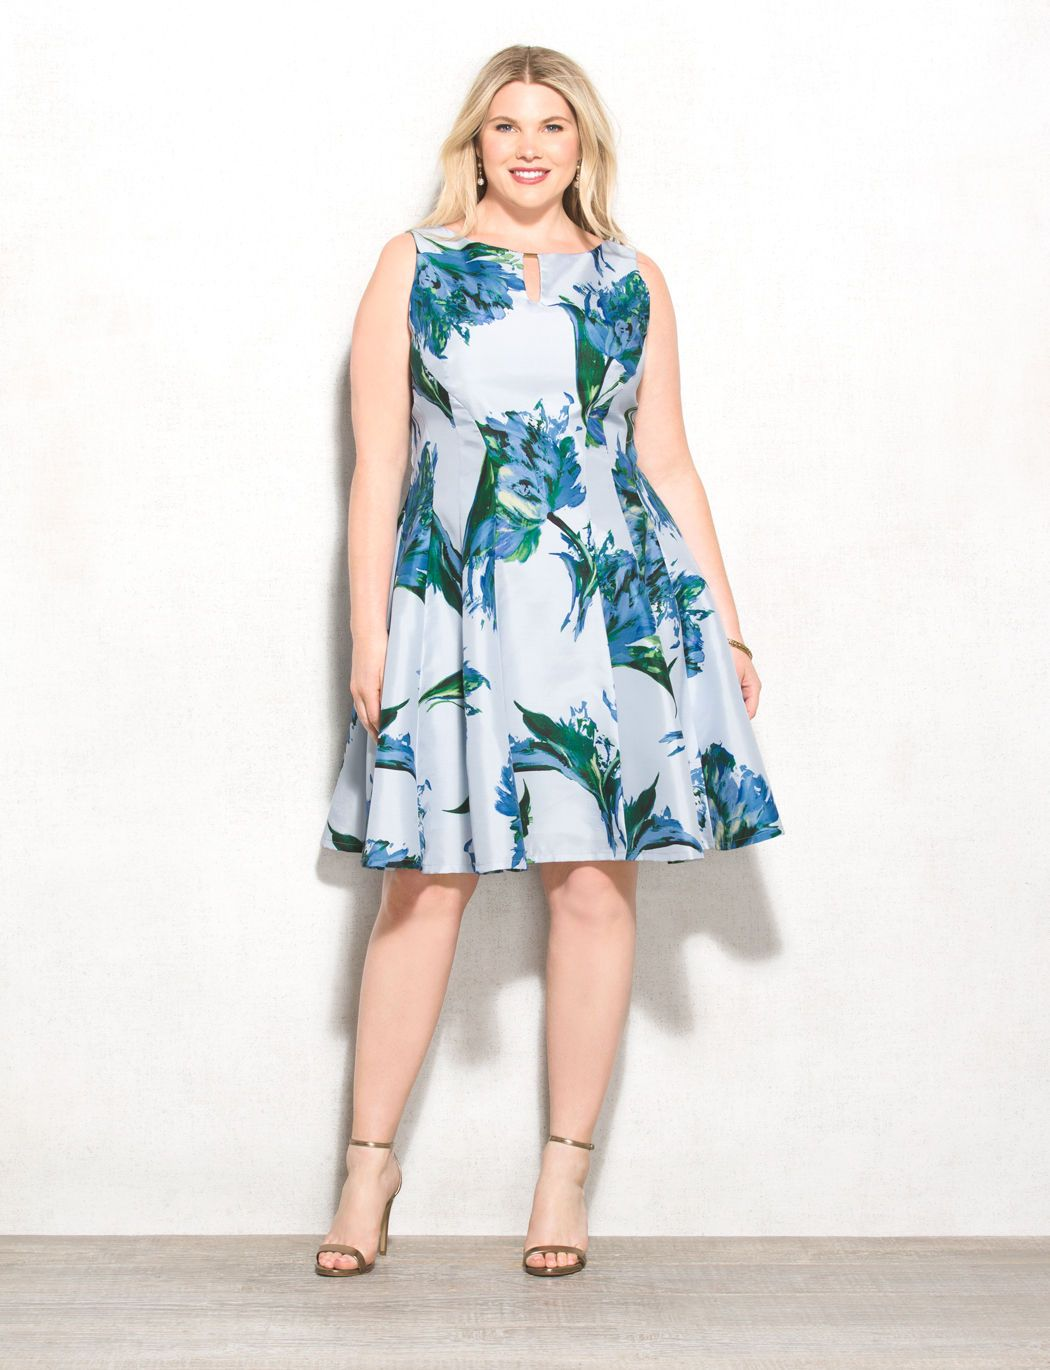 b510bde9721d One floral dress that's sure to impress. Flaunt this fancy fit-and-flare  style to your next party with metallic shoes and a bold lip.